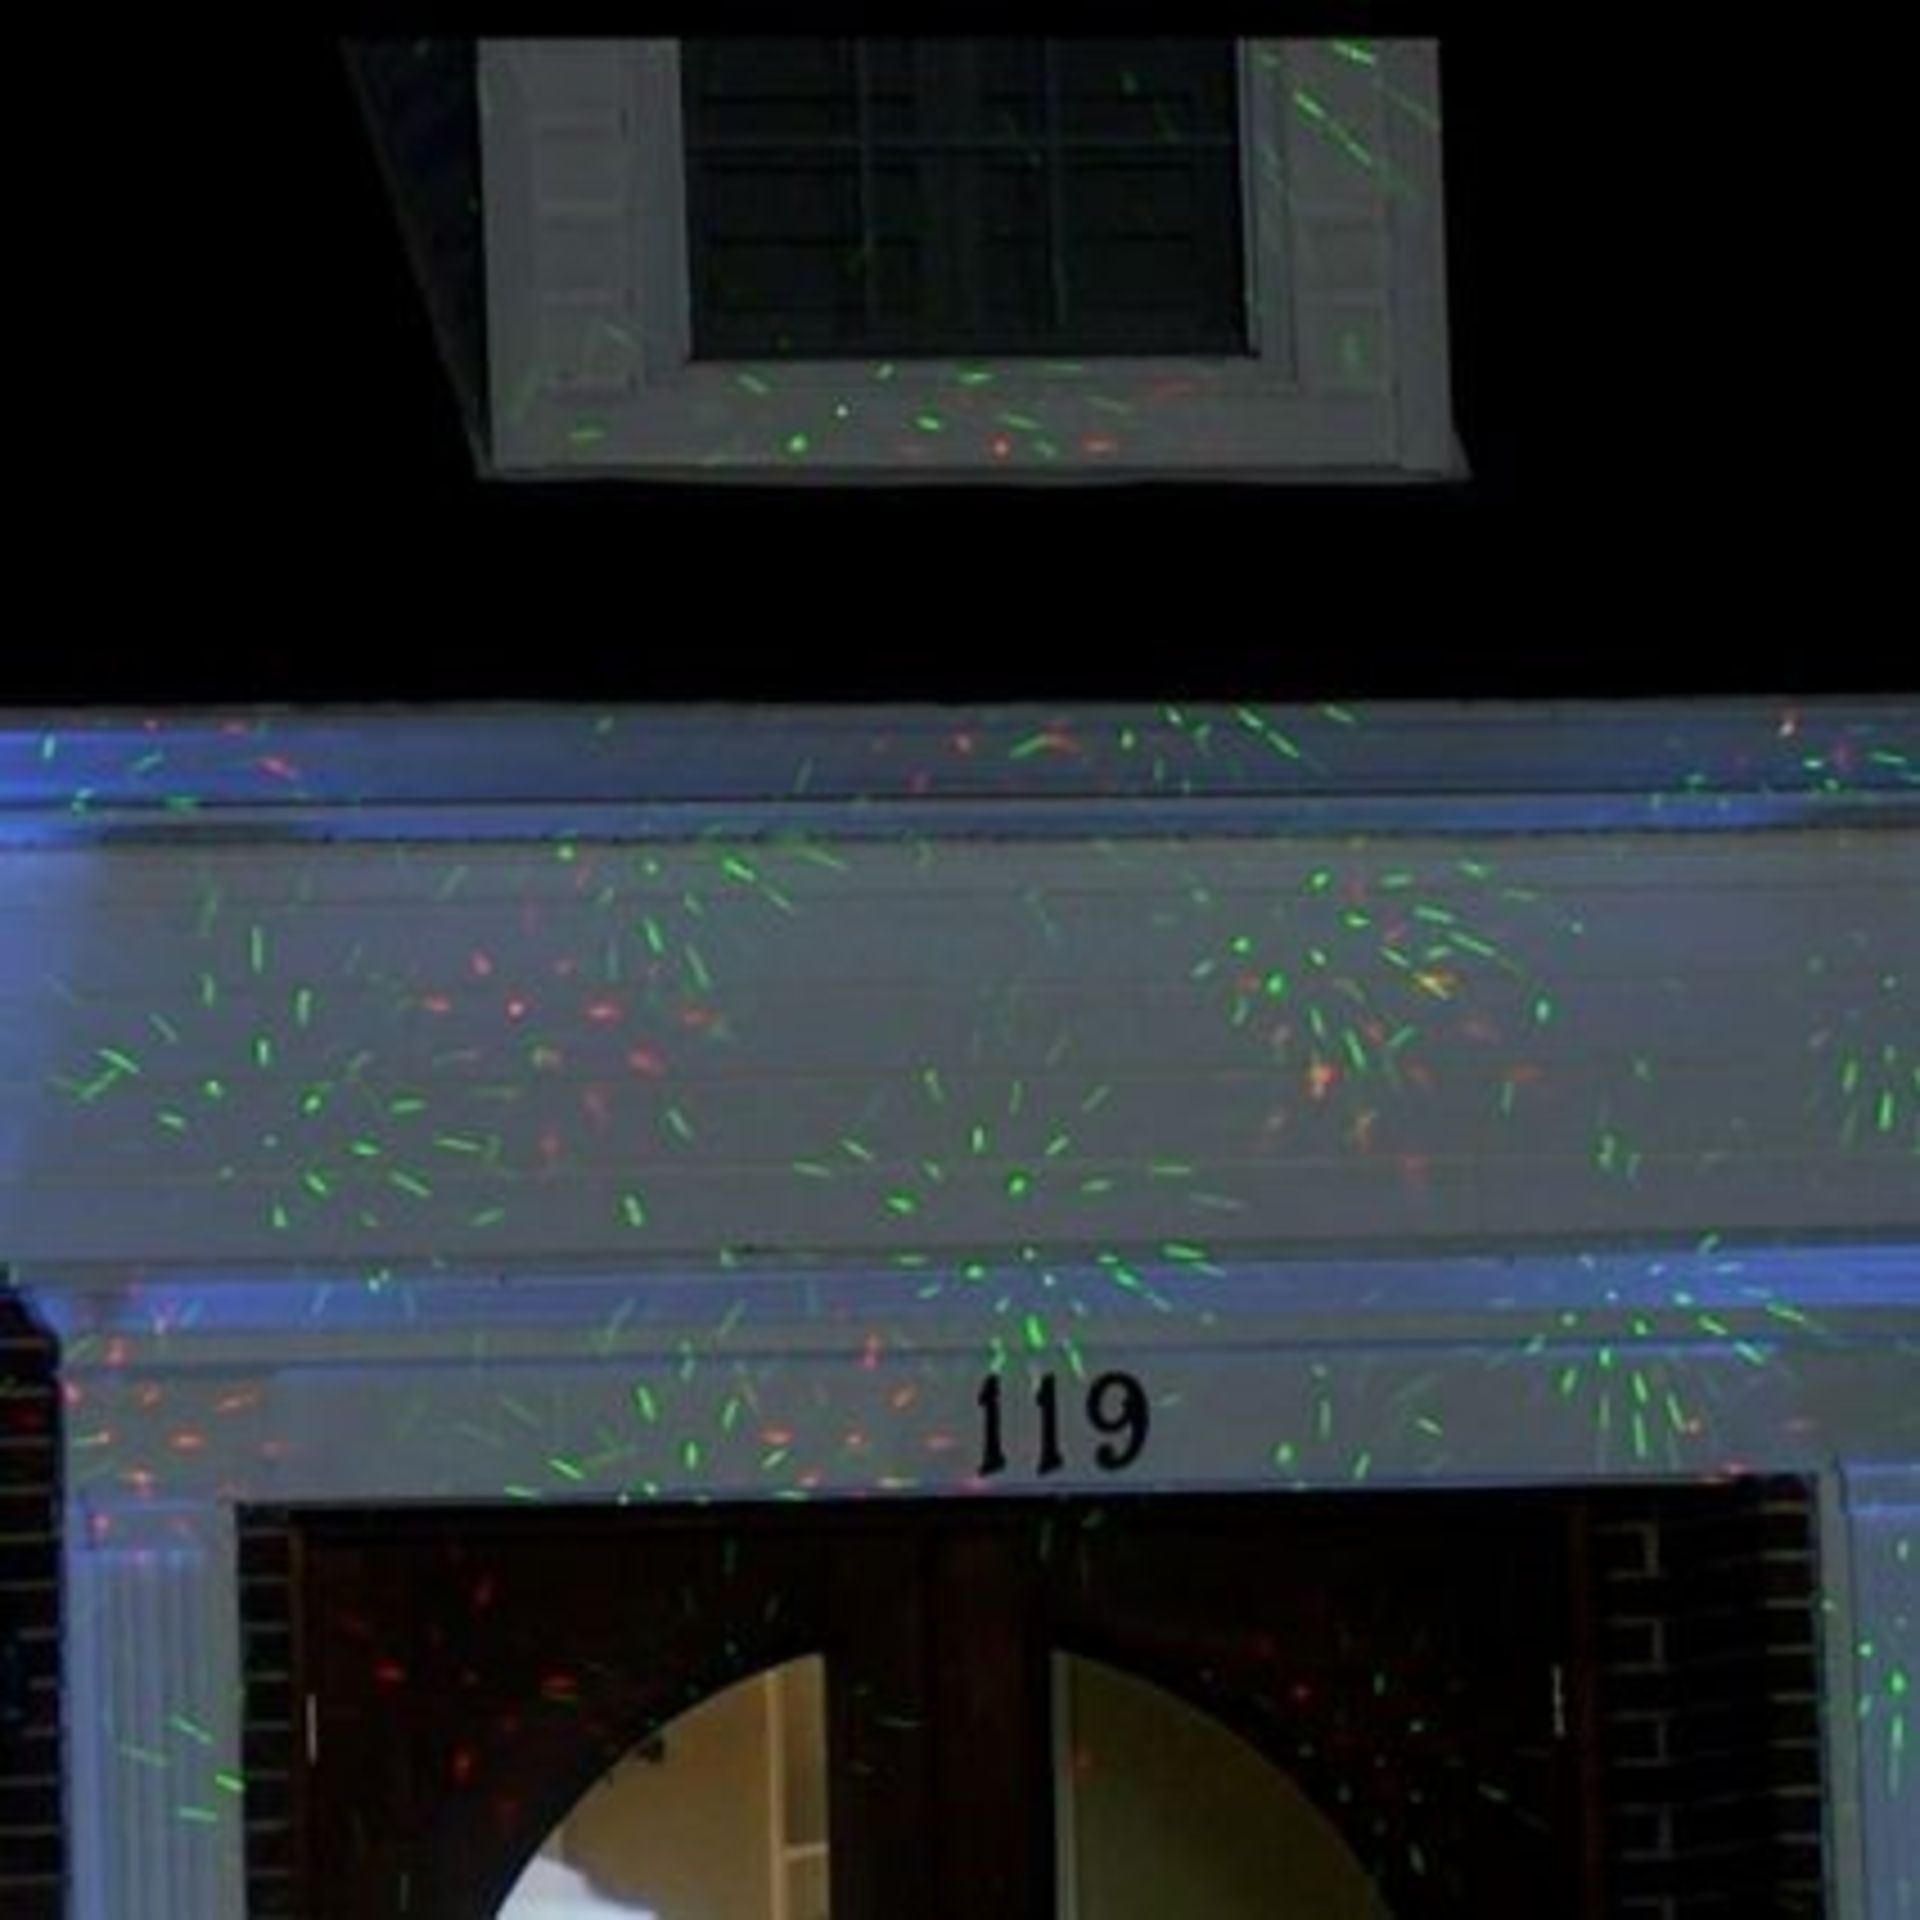 | 1X | BOX OF 6 STARTASTIC ACTION LASER PROJECTORS WITH 6 LASER MODES | NEW AND BOXED | SKU - Image 7 of 8